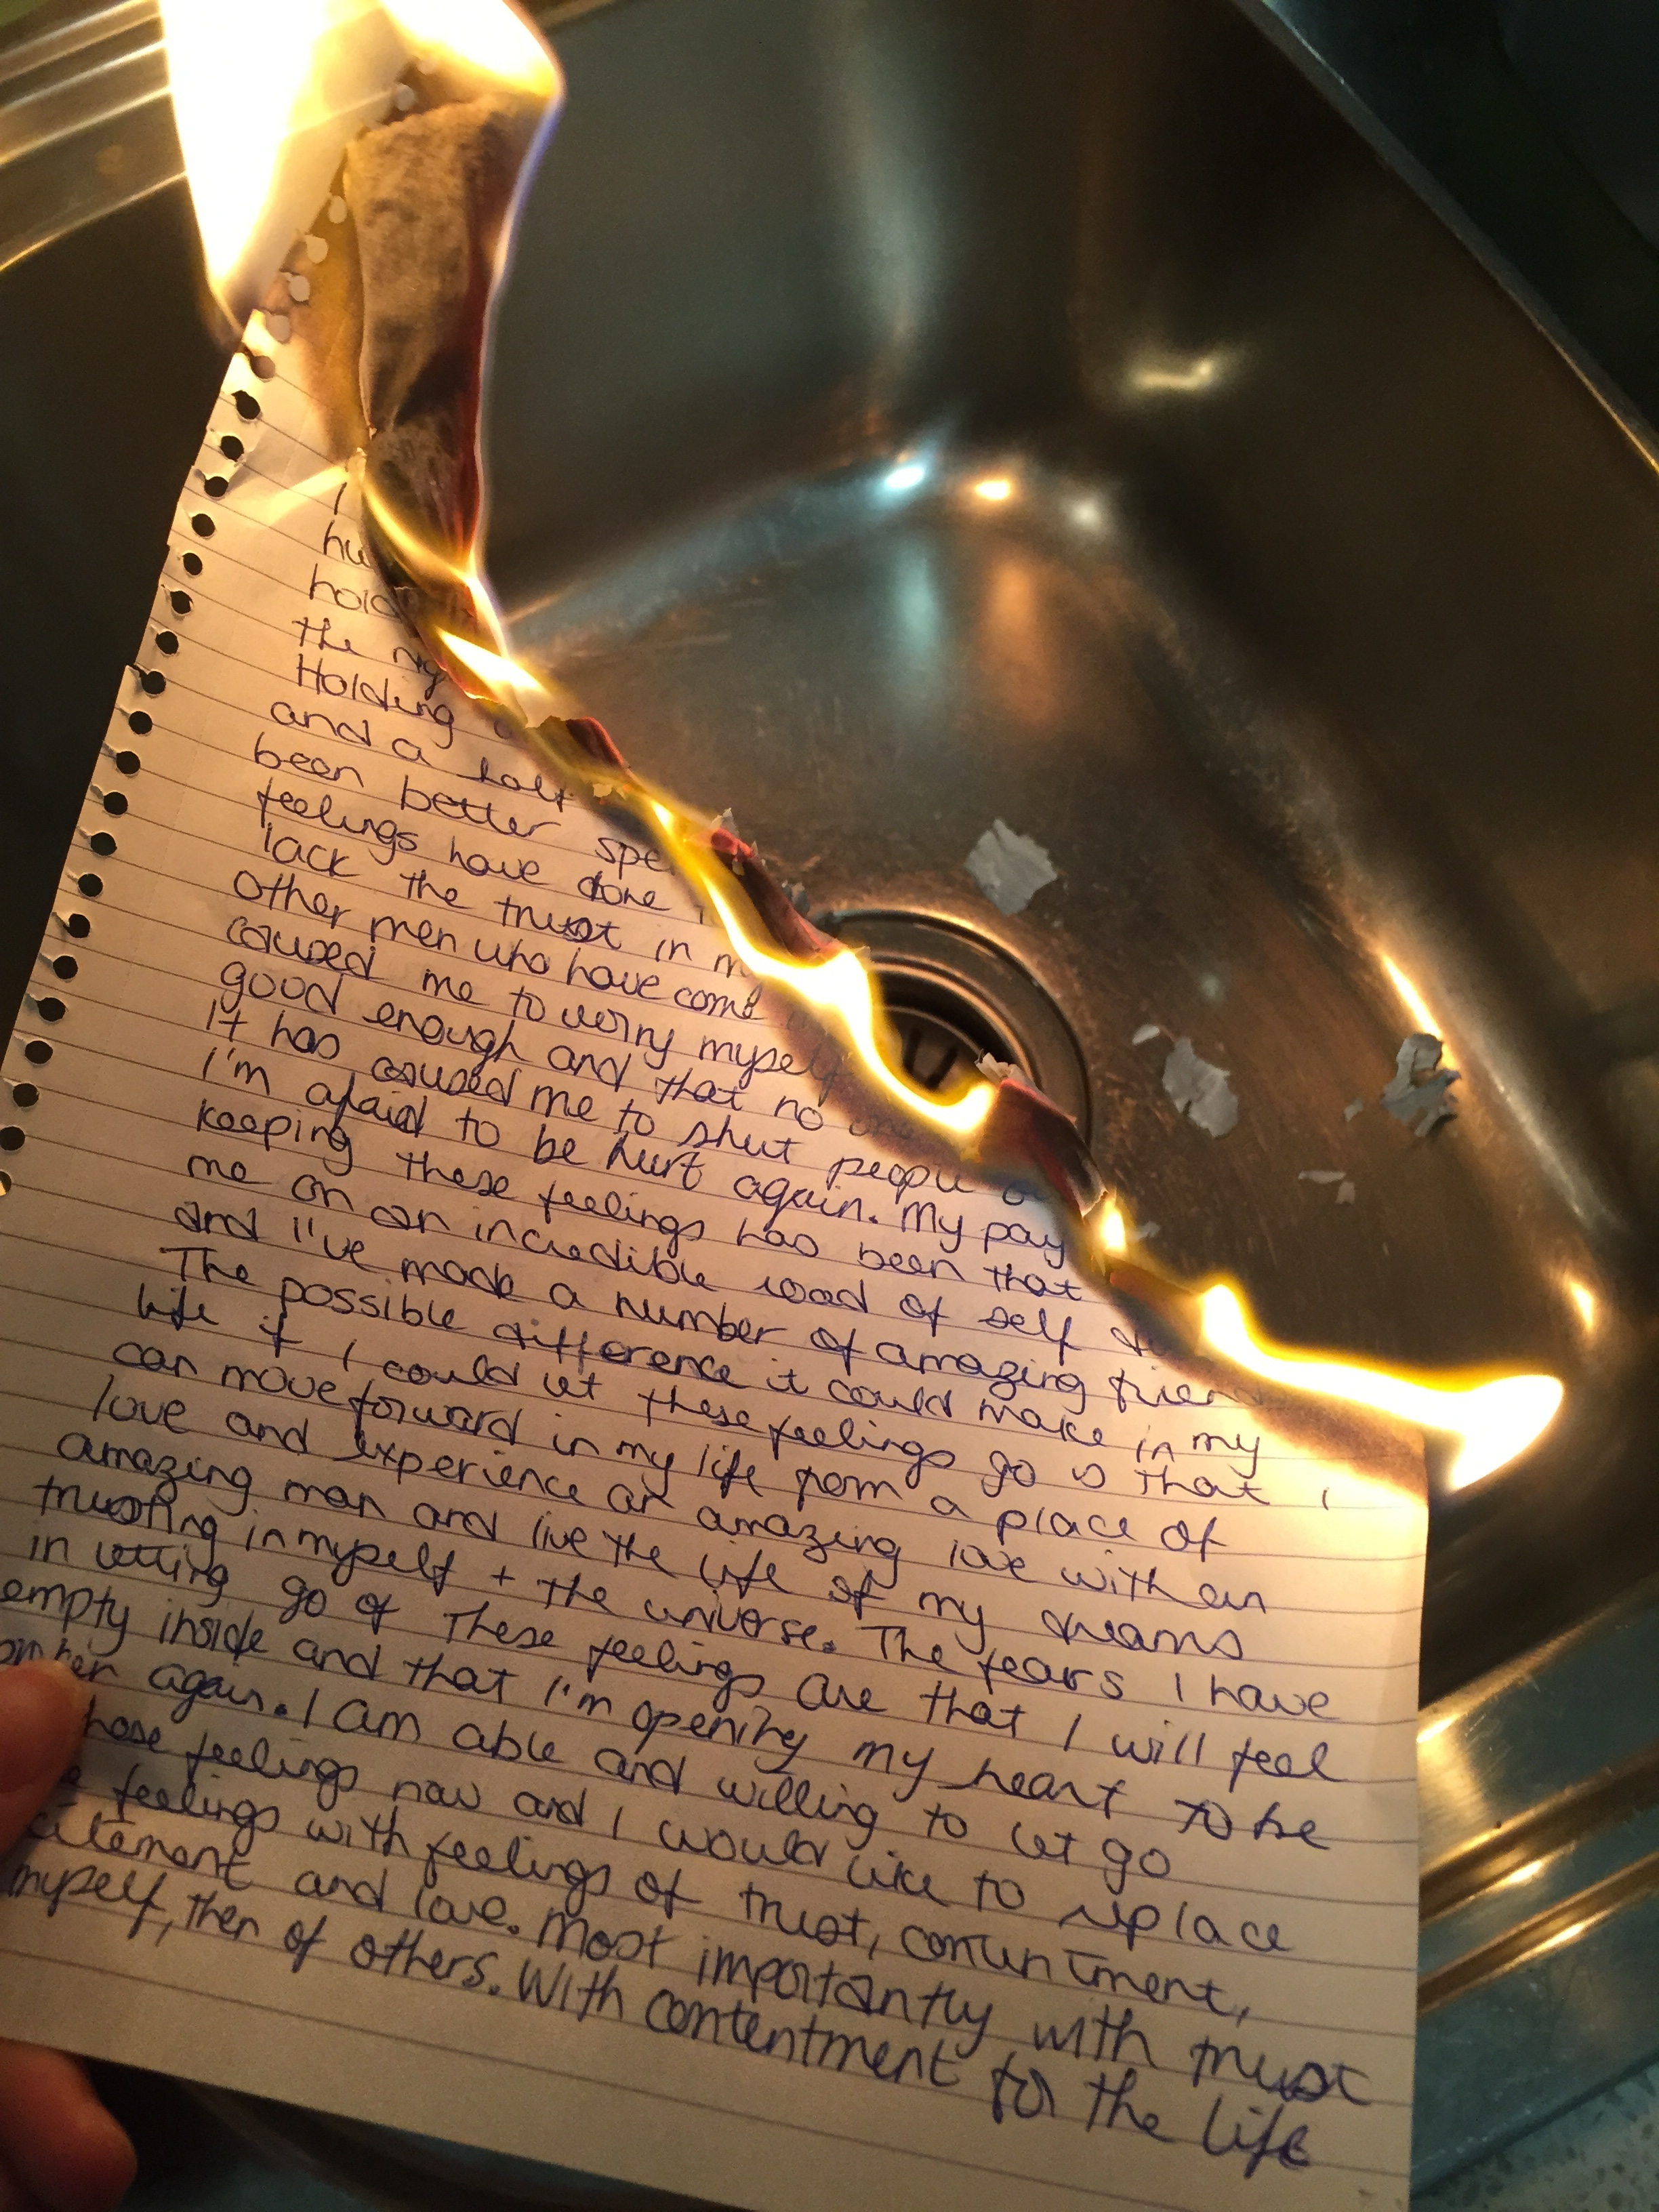 Custom of writing letters and burning them